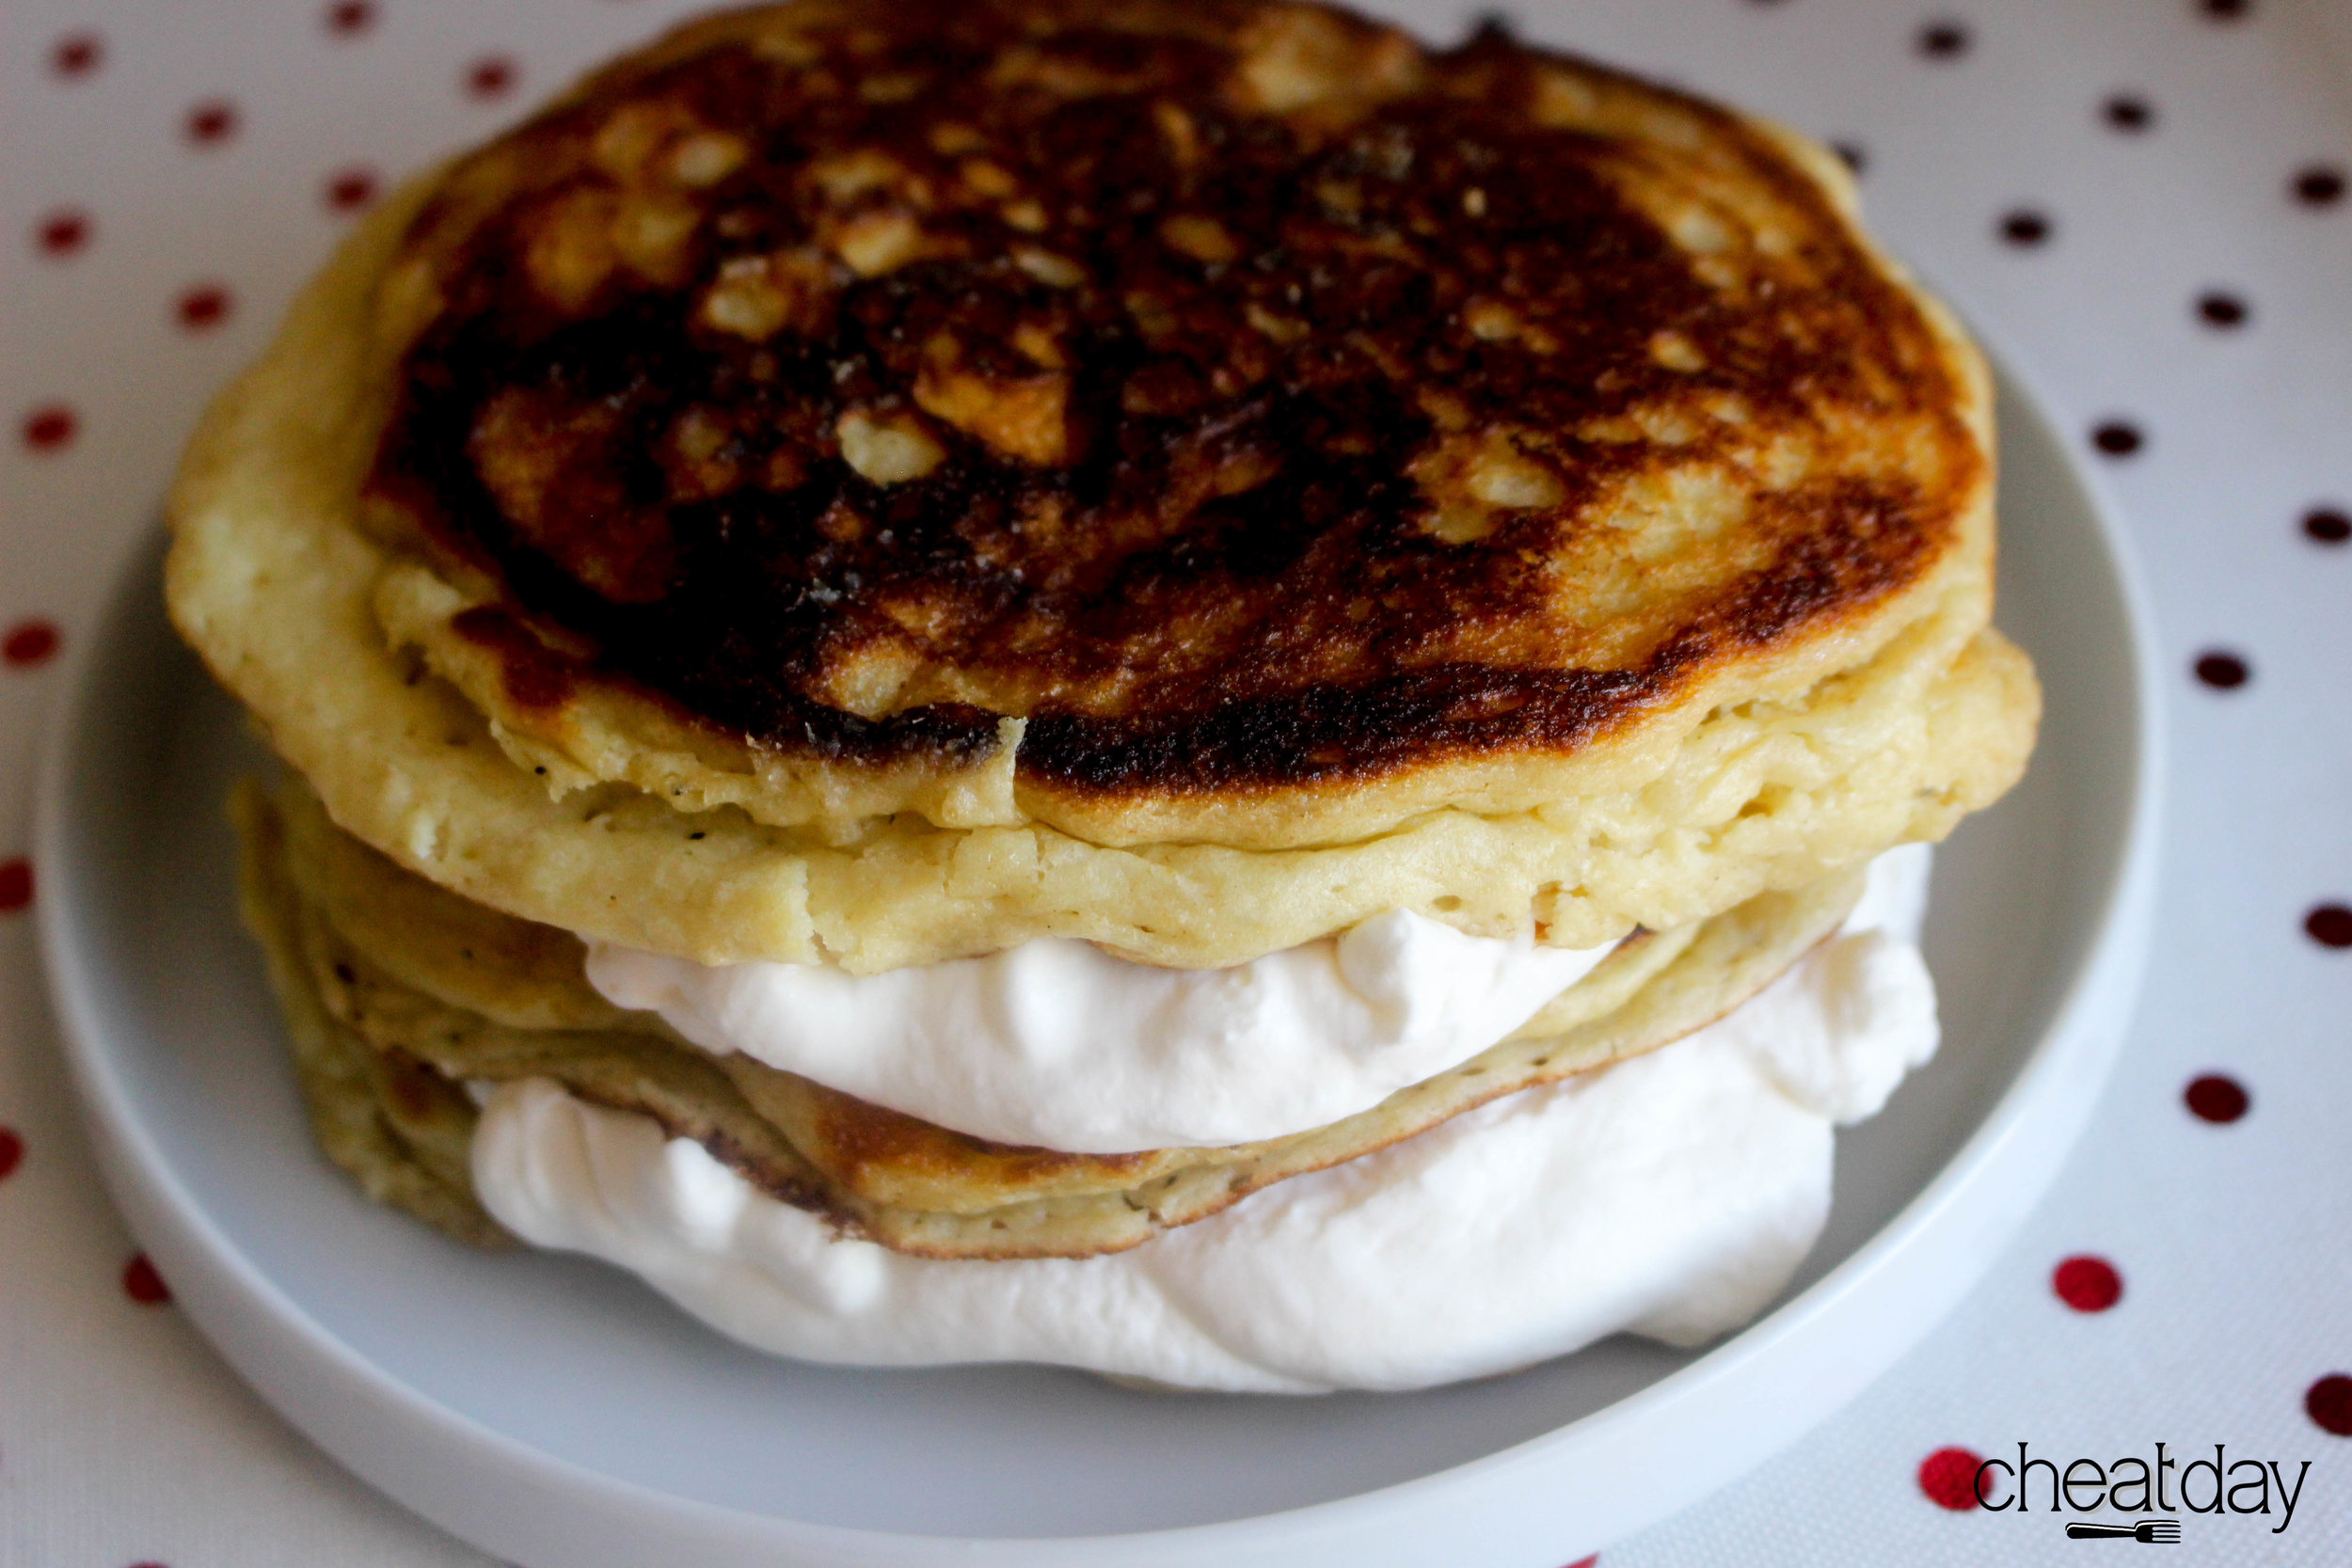 Layers of vanilla-bourbon whipped cream between the pancakes. Honestly...I could've stopped here. BUT...